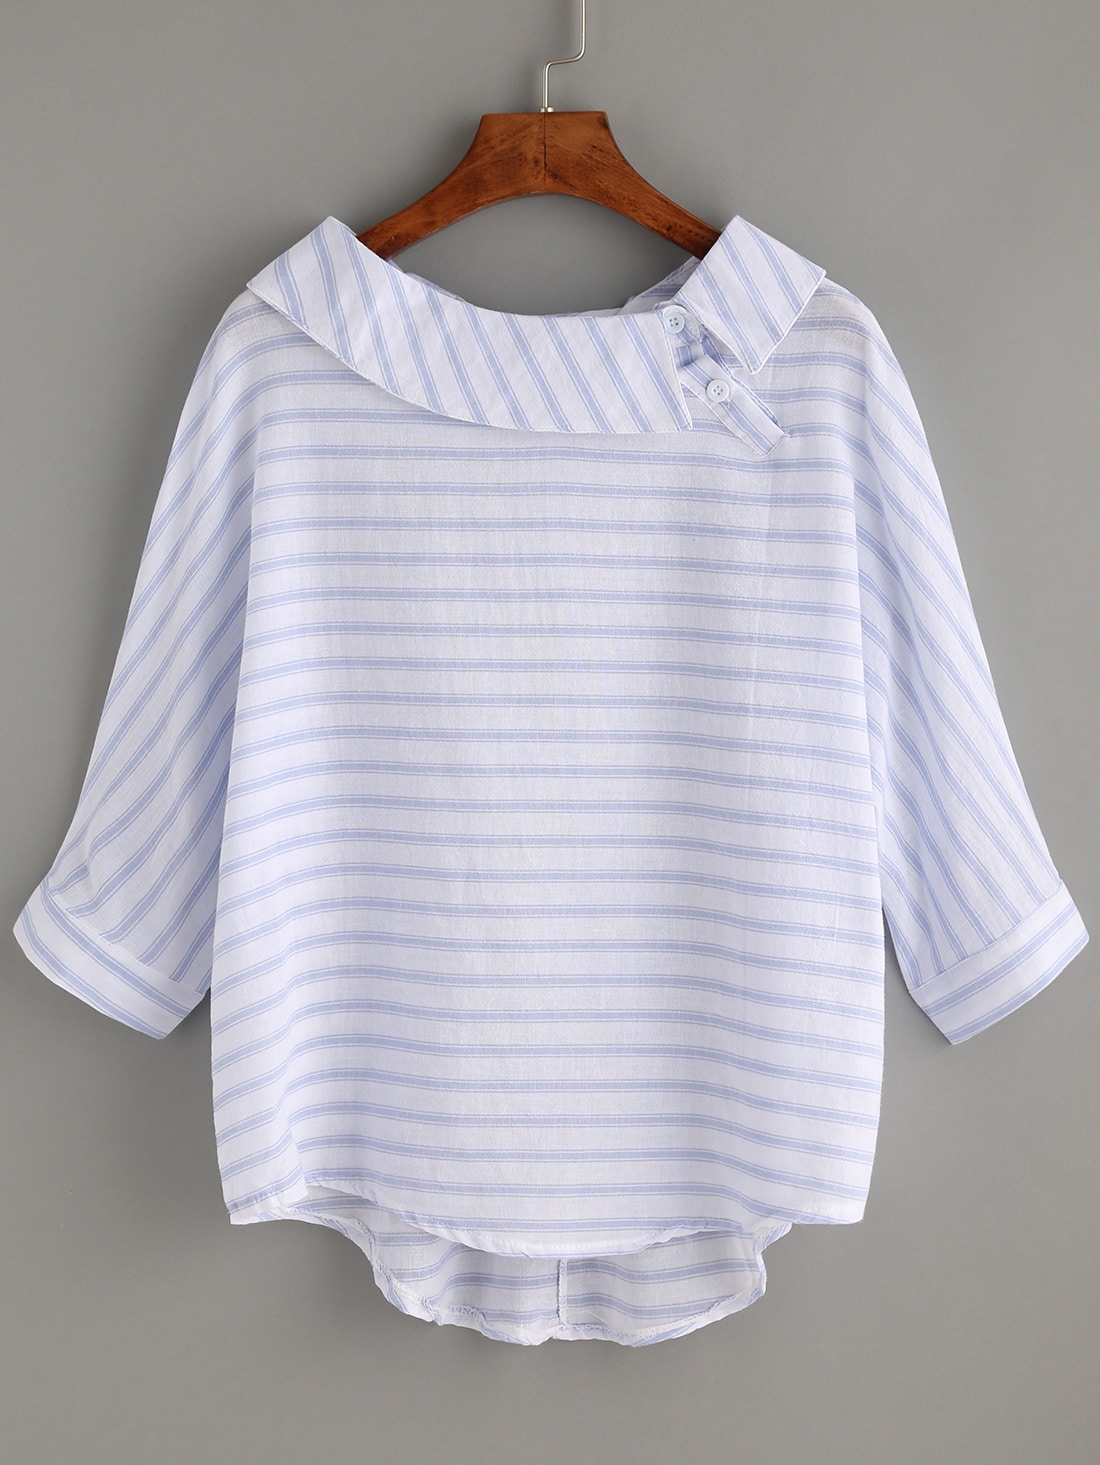 Women's Long Sleeve Striped Boatneck T-Shirt, $ 24 50 Prime. Nomorer. Women's Short Sleeve Printing Top Scoop Neck Striped Blouse $ 9 99 Prime. out of 5 stars 3. MSBASIC. Women's 3/4 Sleeve Boat Neck Striped Relax Fit Tee Shirts $ 16 88 Prime. 4 out of 5 stars Sejora.